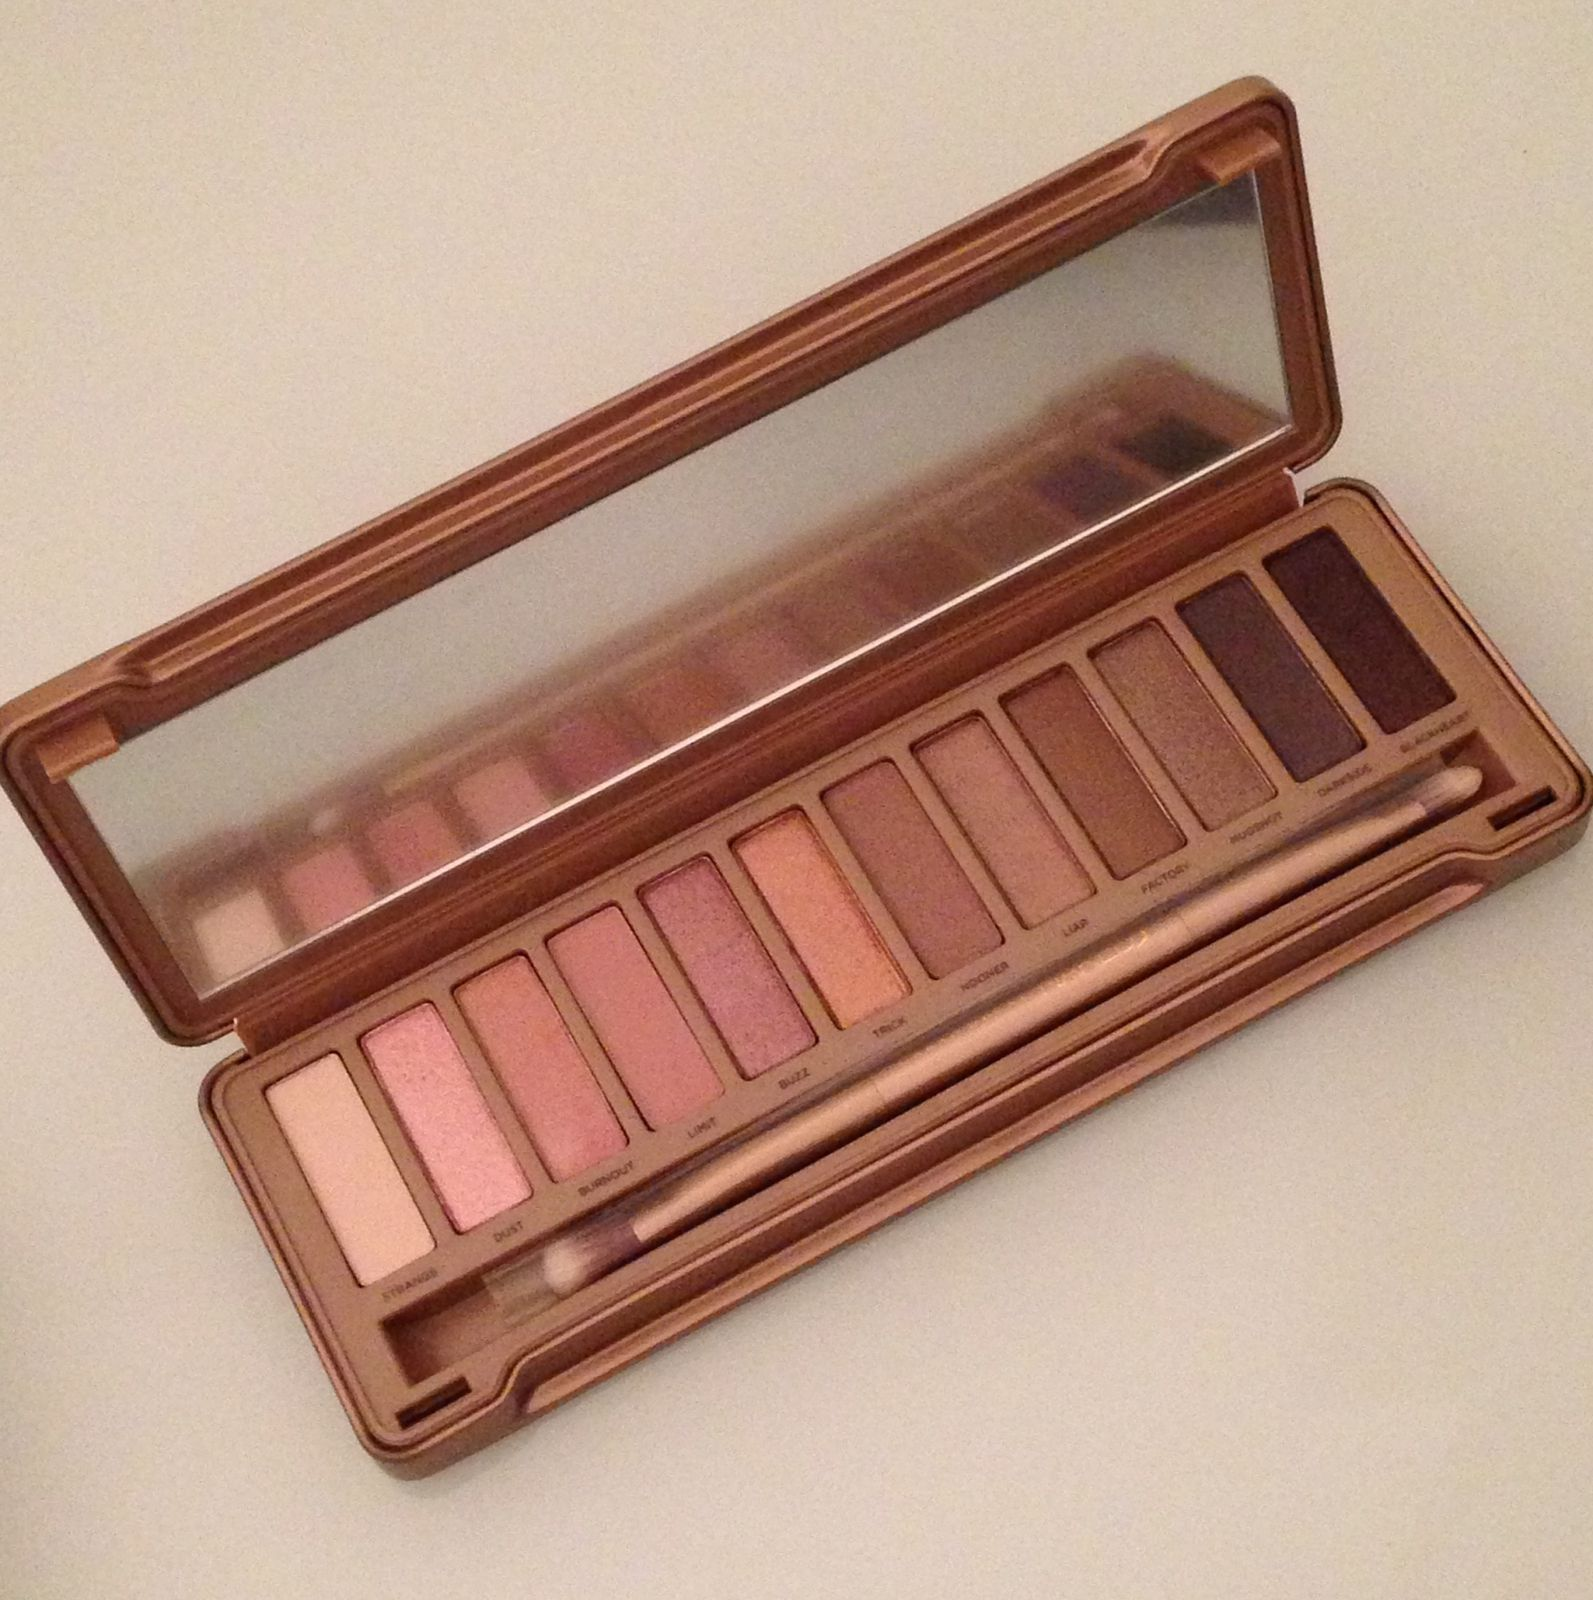 Naked 3 Urban Decay, les swatchs